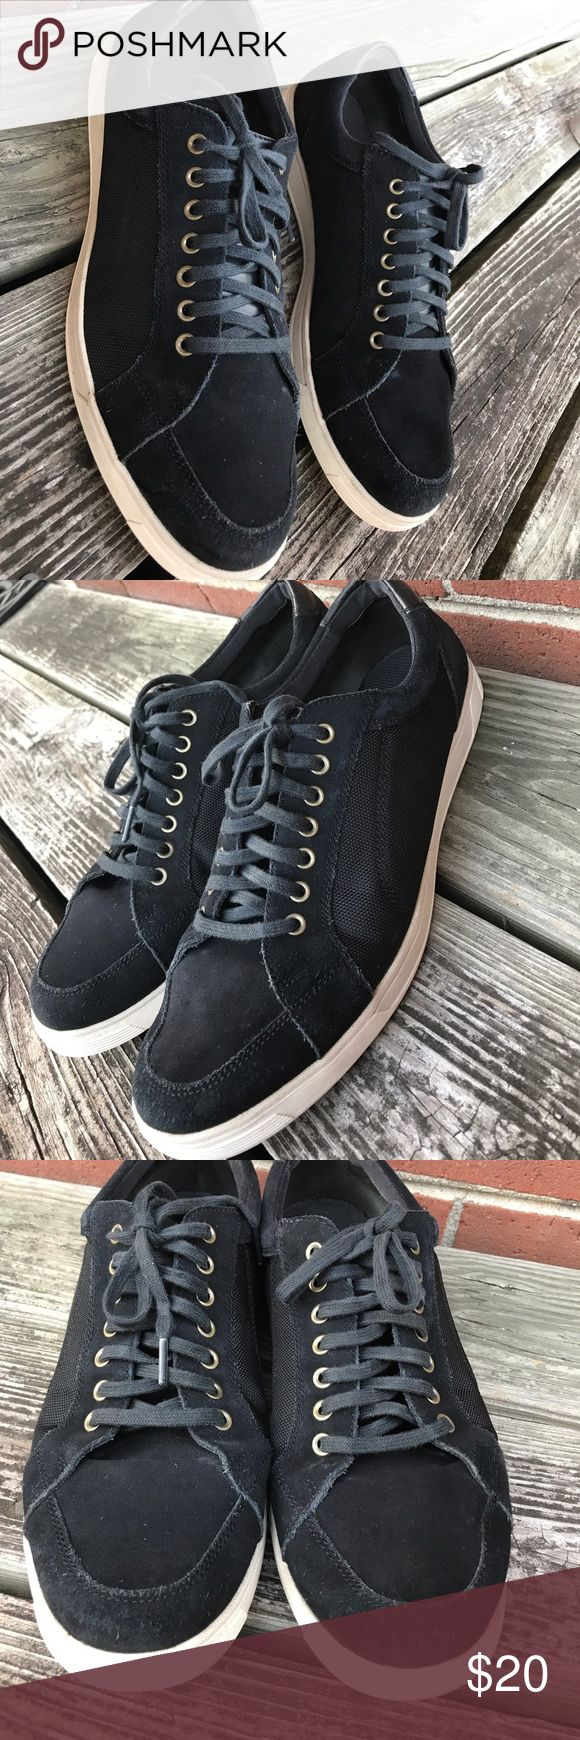 👱Cole Haan suede sneakers Suede and nylon canvas sneakers. Gently worn. Pics show any flaws. I have not attempted to clean the suede, and mark in the back right shoe looks like it CAN be cleaned off. Excellent used condition. Size 11 Shoes